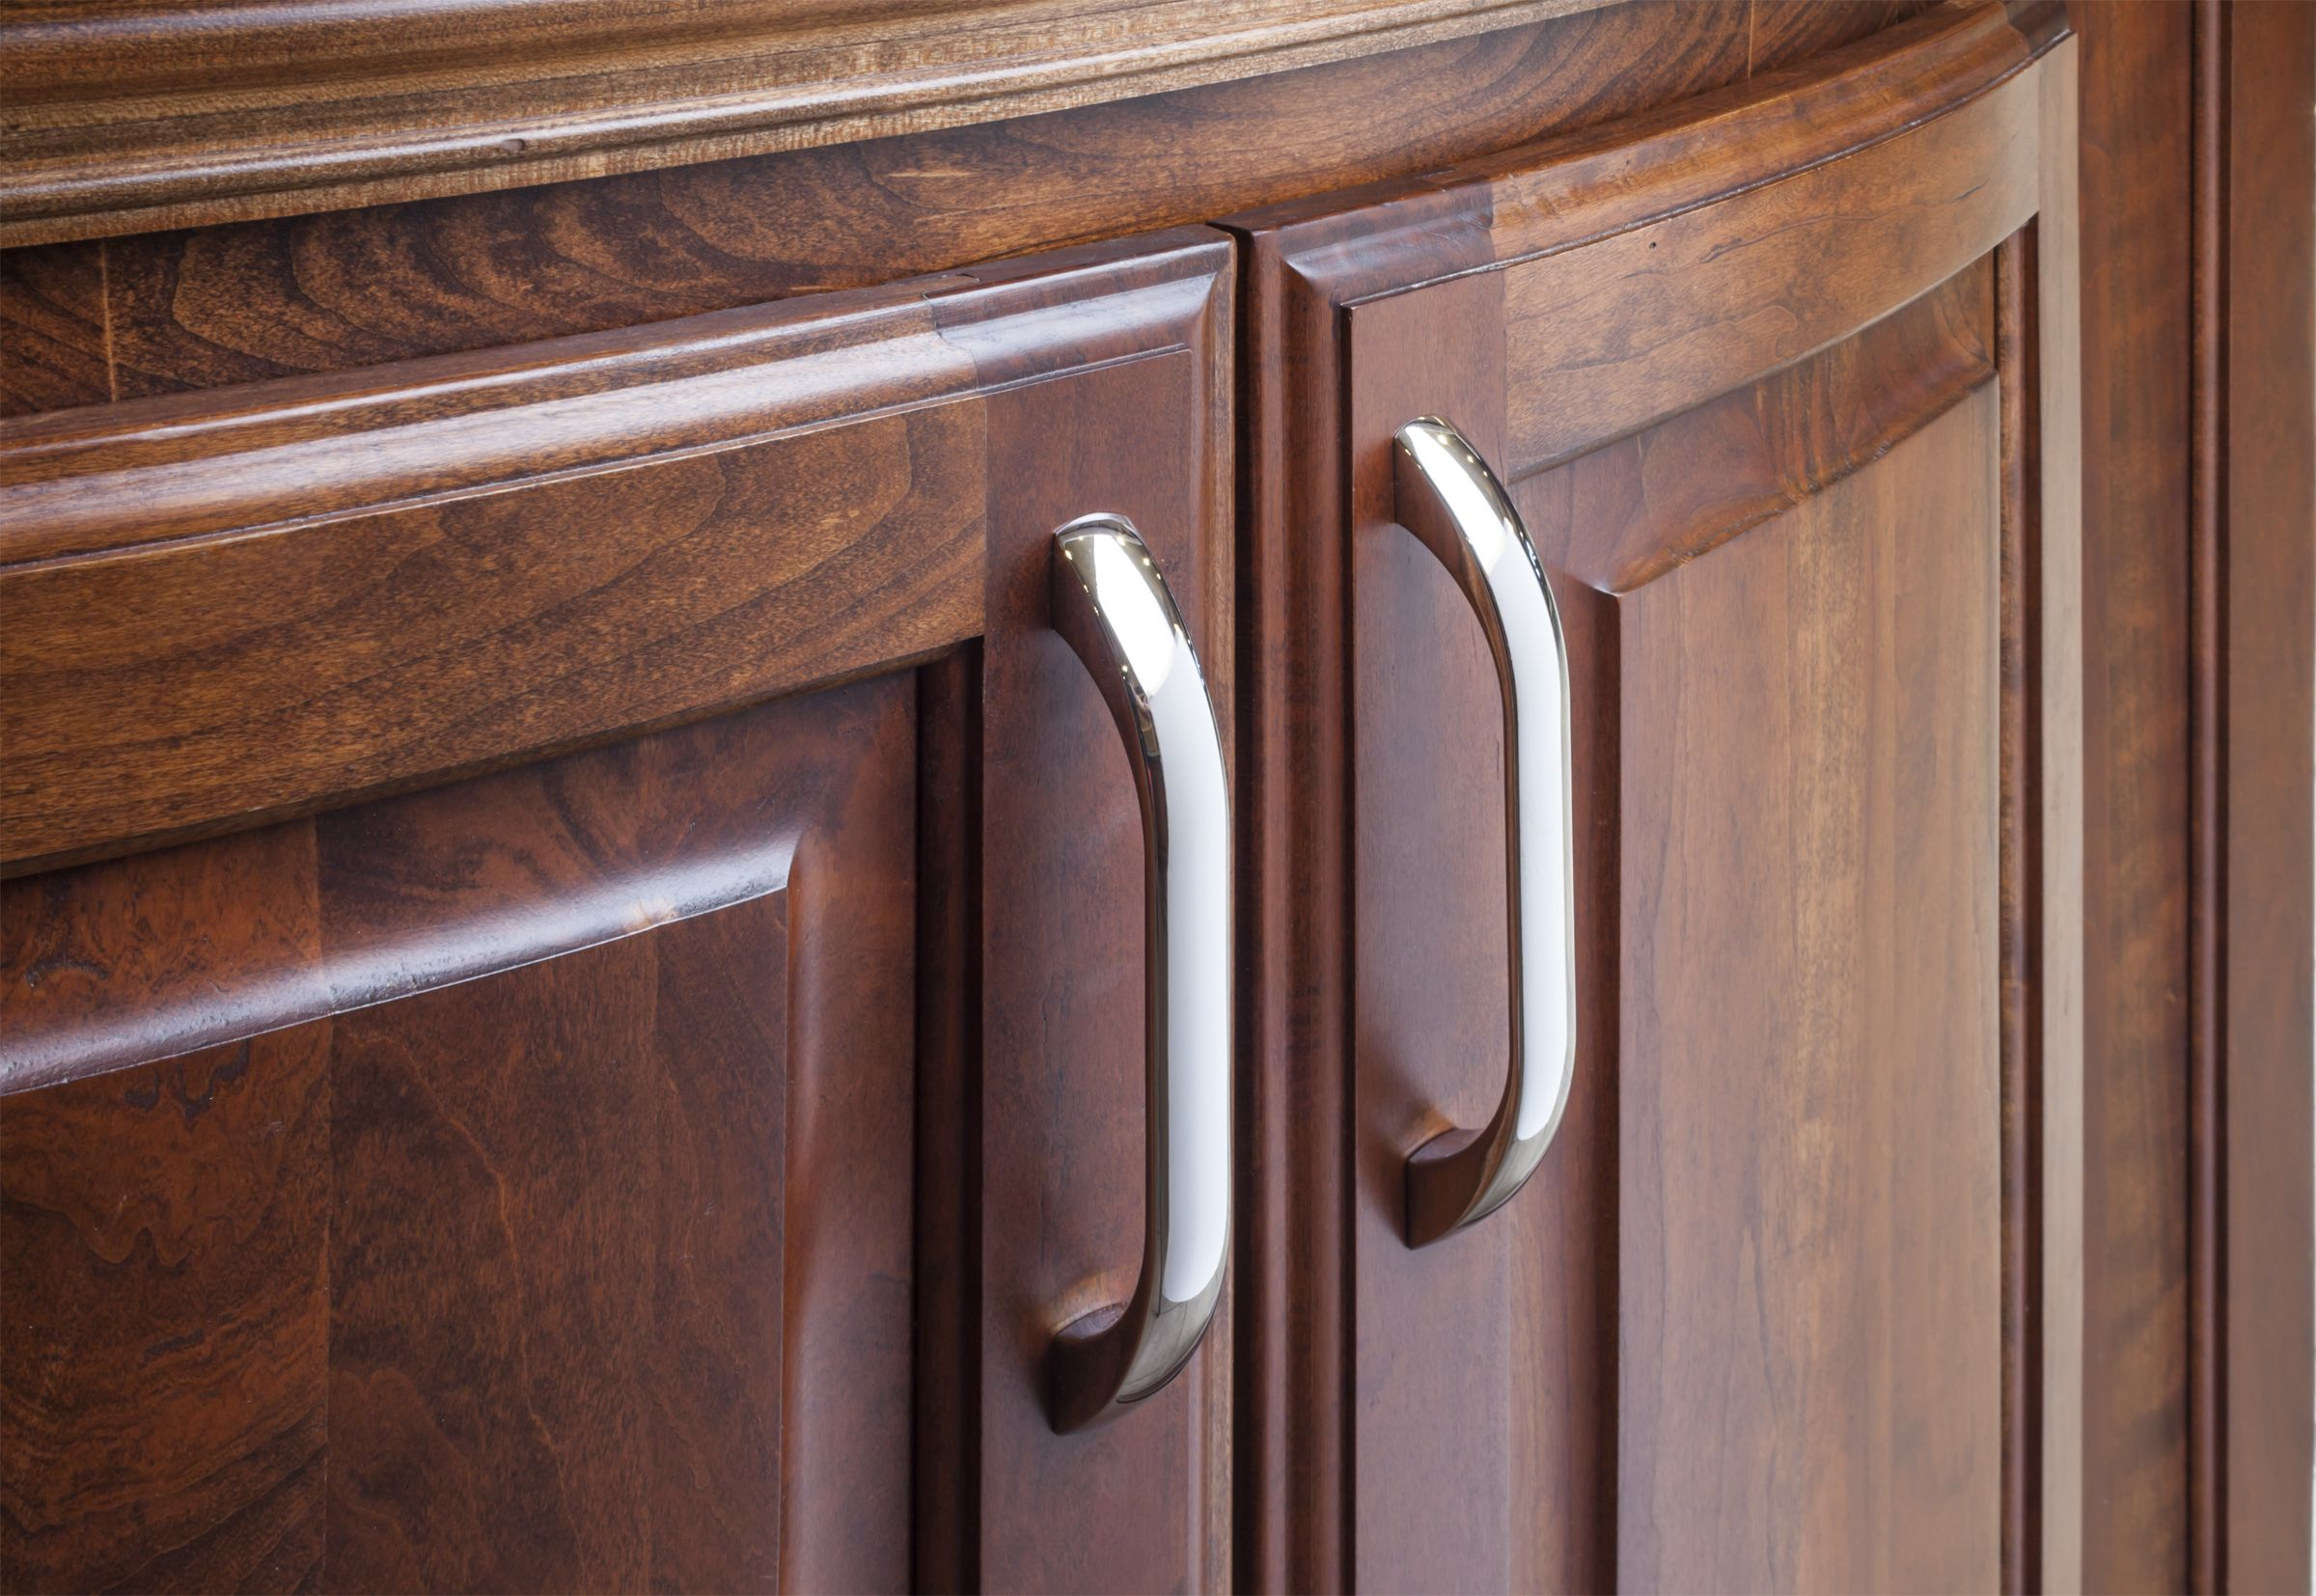 Sonoma cabinet pulls from Jeffrey Alexander by Hardware Resources ...